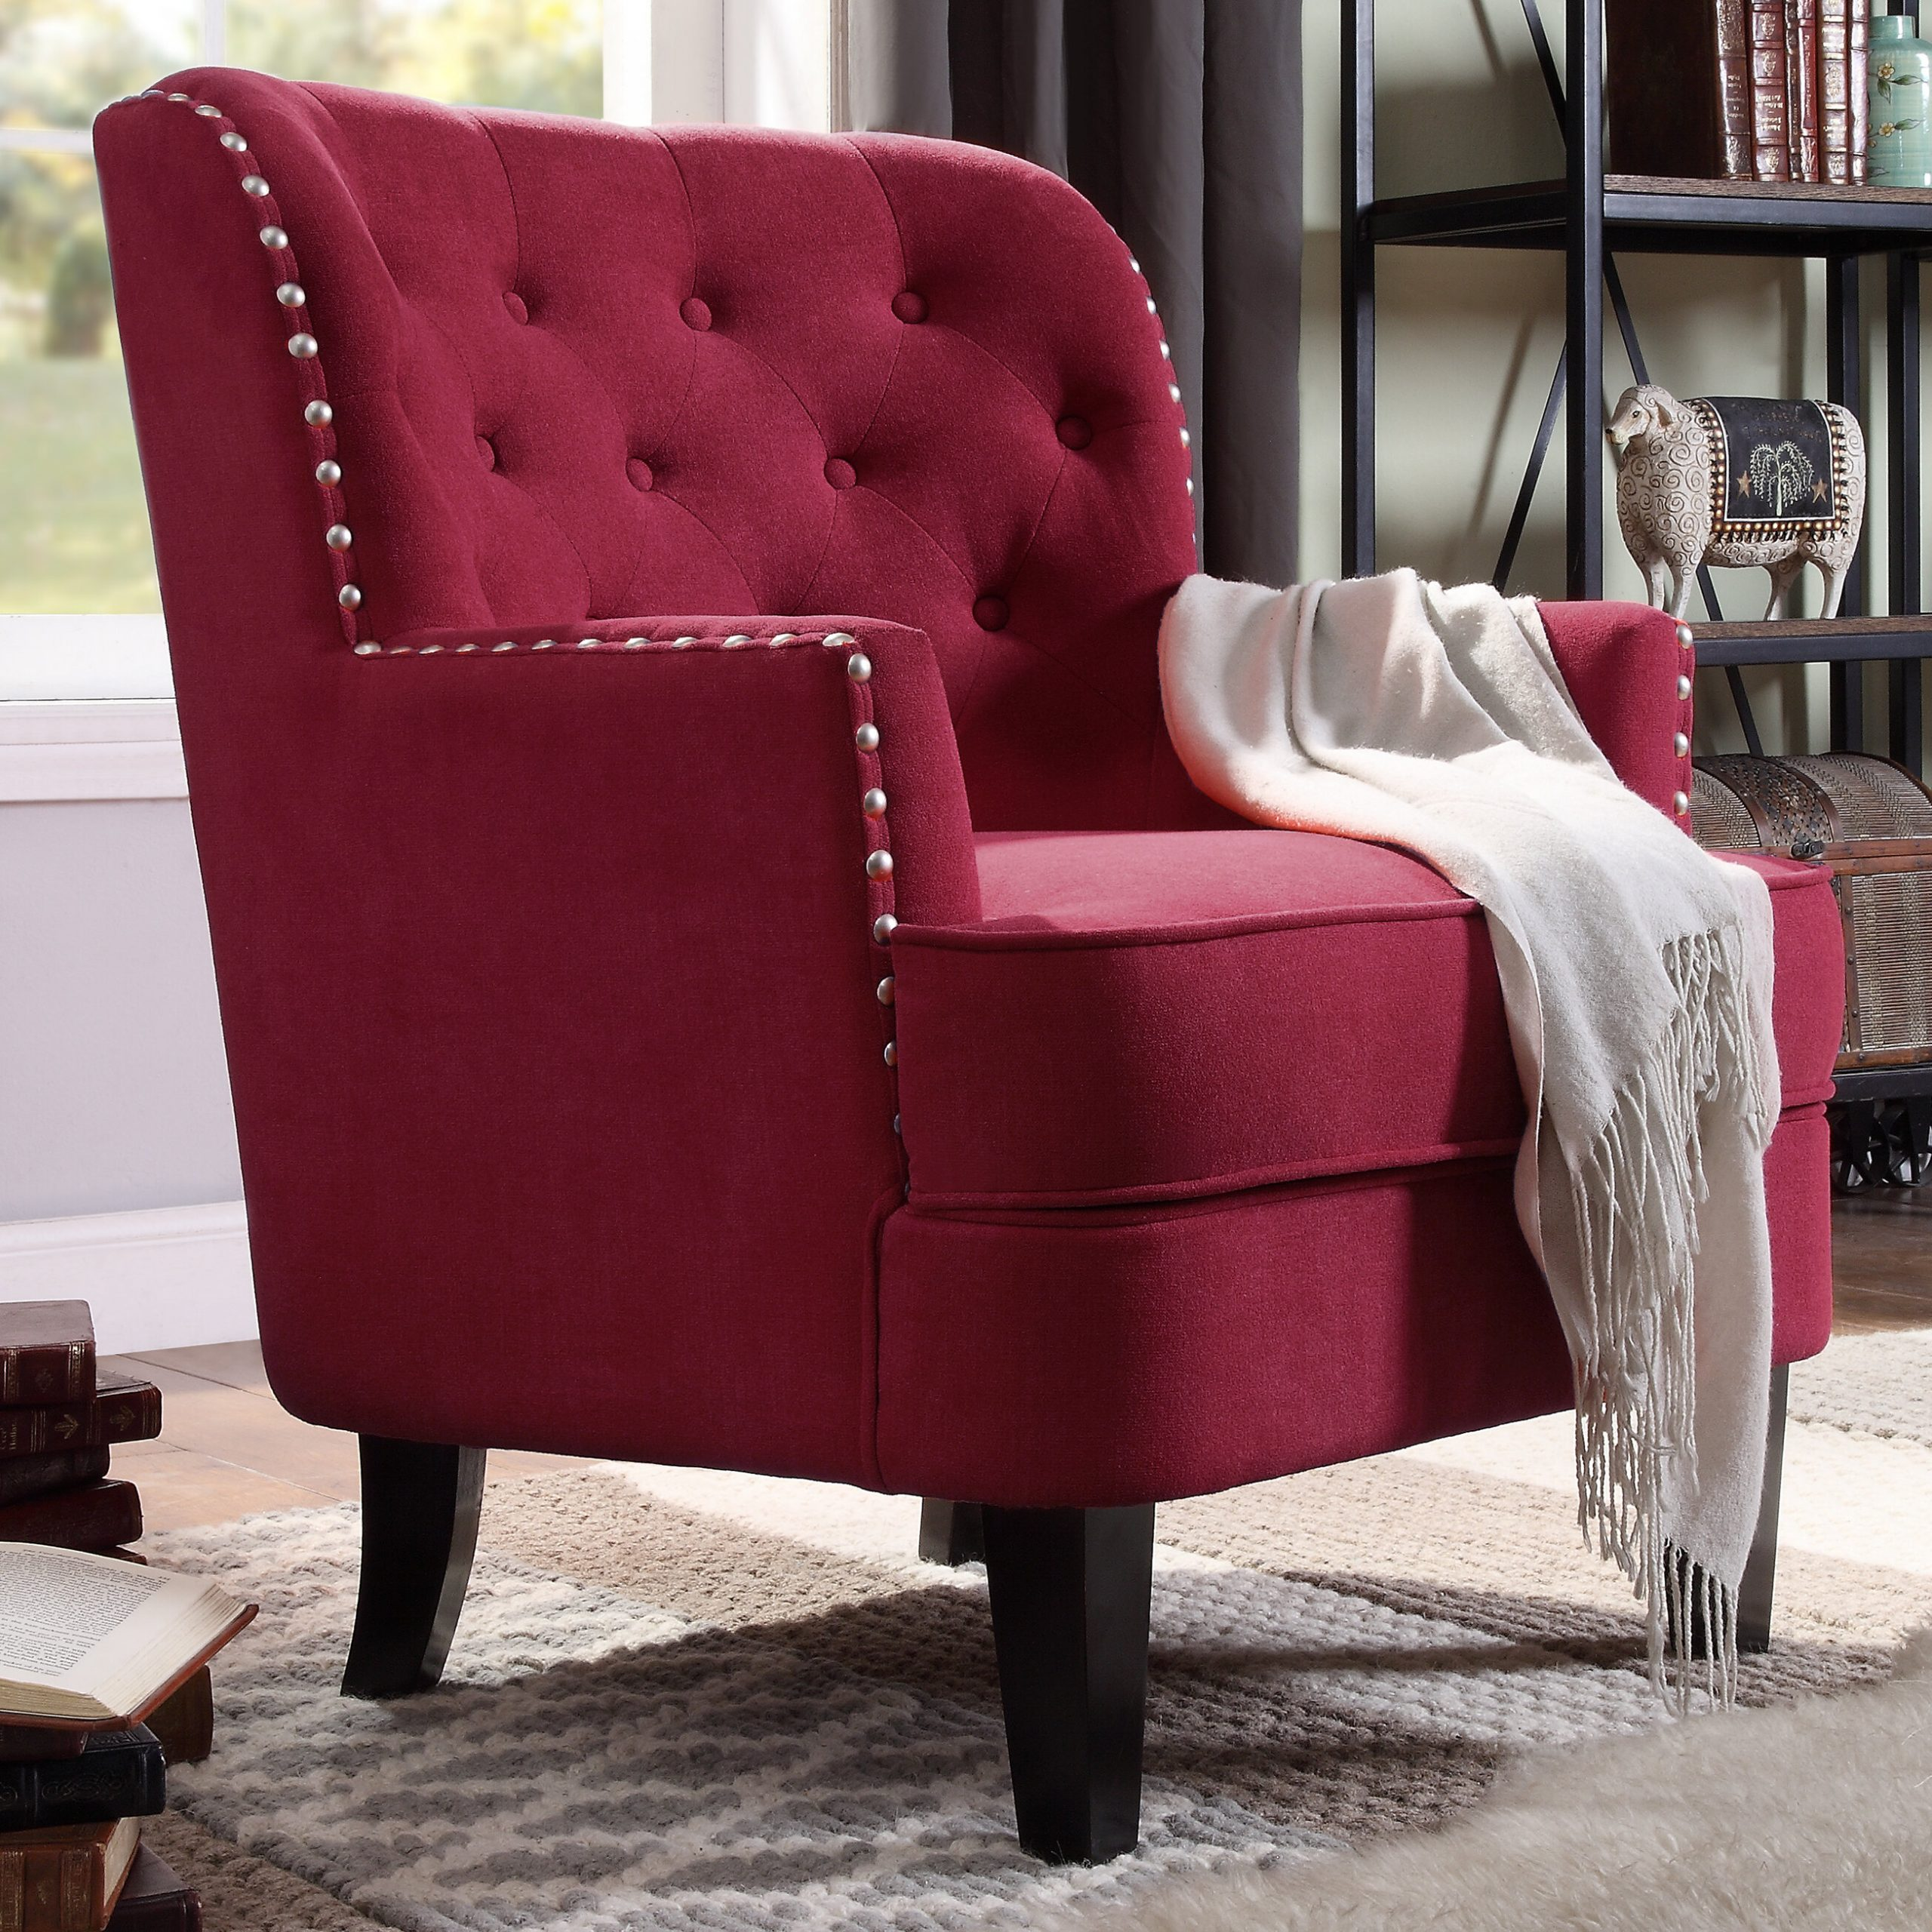 Red Traditional Accent Chairs You'Ll Love In 2021 | Wayfair Regarding Lenaghan Wingback Chairs (View 4 of 15)